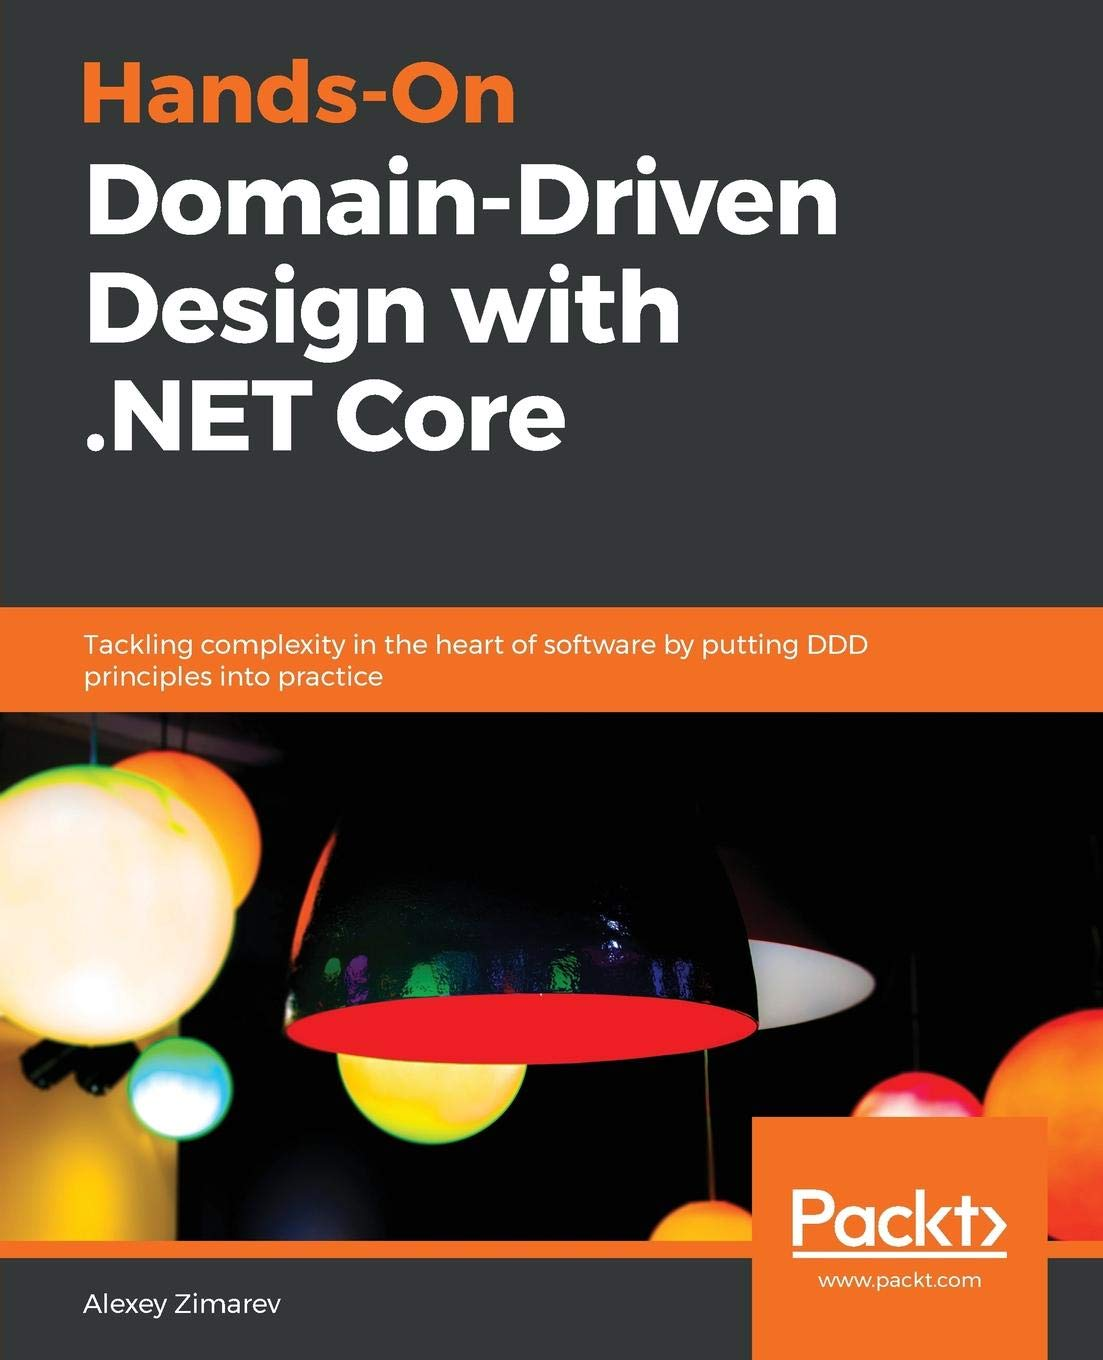 Hands On Domain Driven Design with .NET Core: Tackling complexity in the heart of software by putting DDD principles into practice